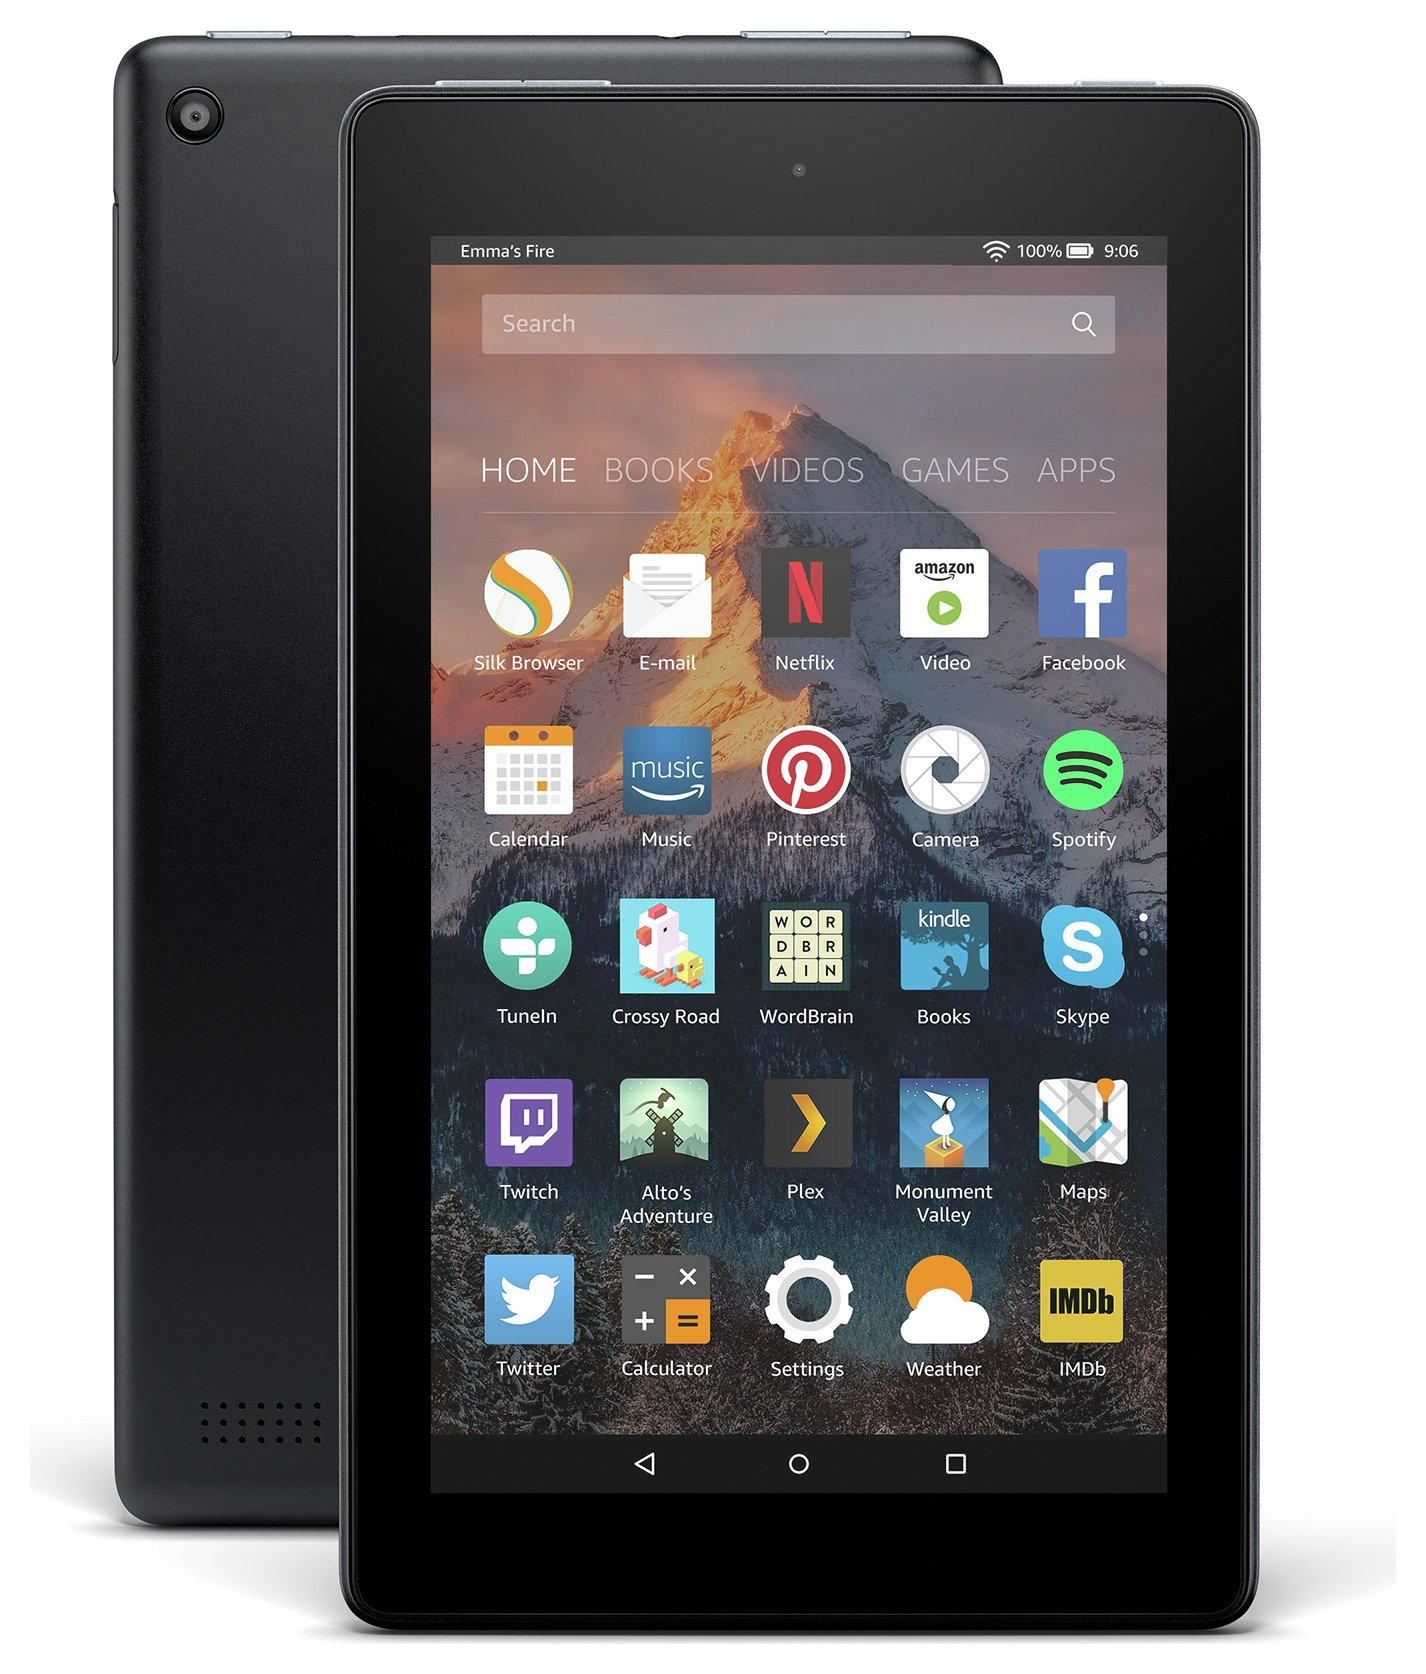 Amazon Fire 7 Alexa 7 Inch 16GB Tablet - Black